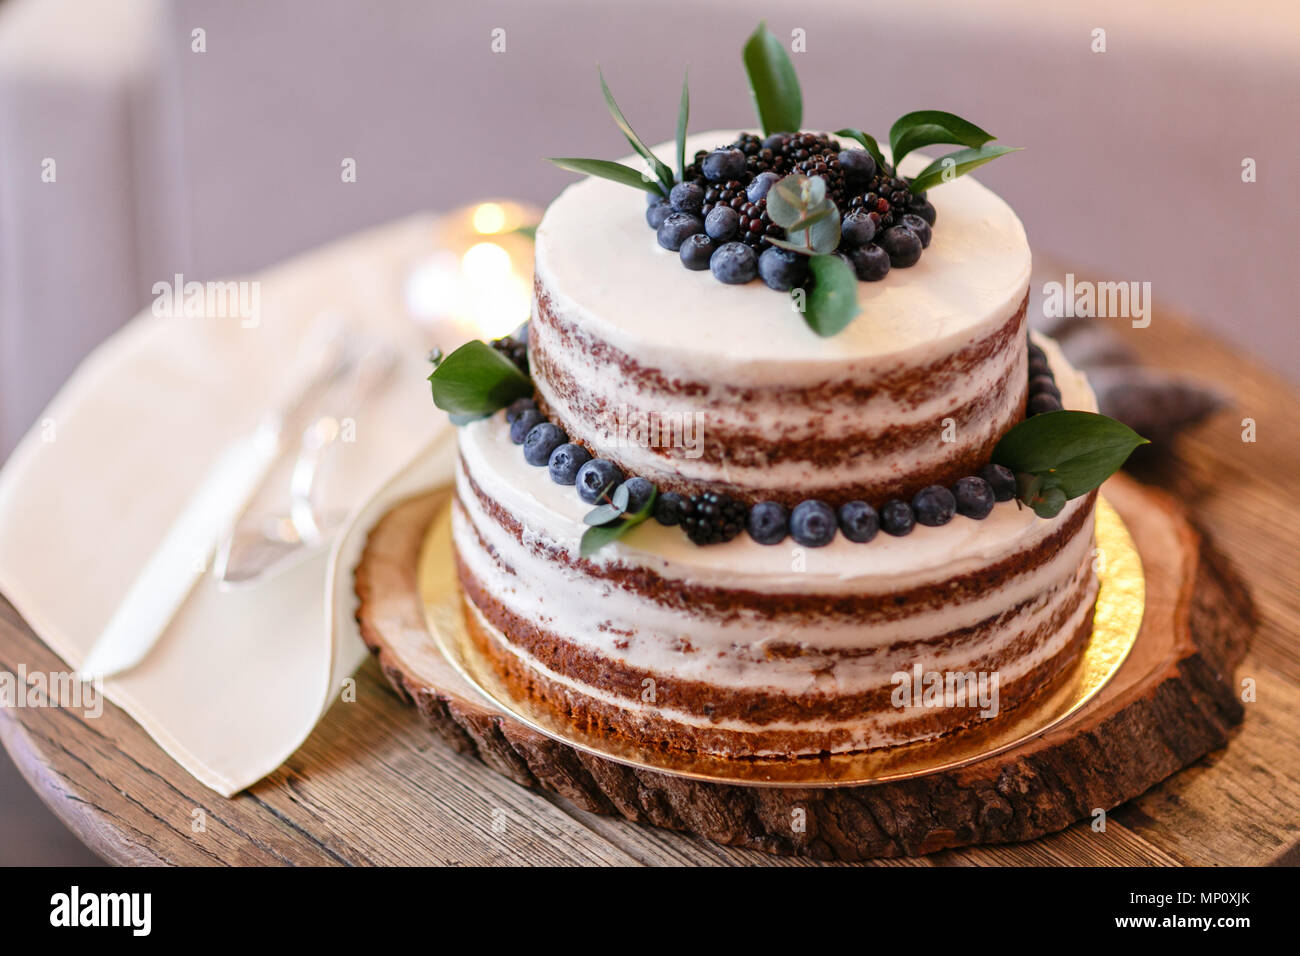 Wedding or birthday cake with berries. Sweet pie on banquet in restaurant. - Stock Image